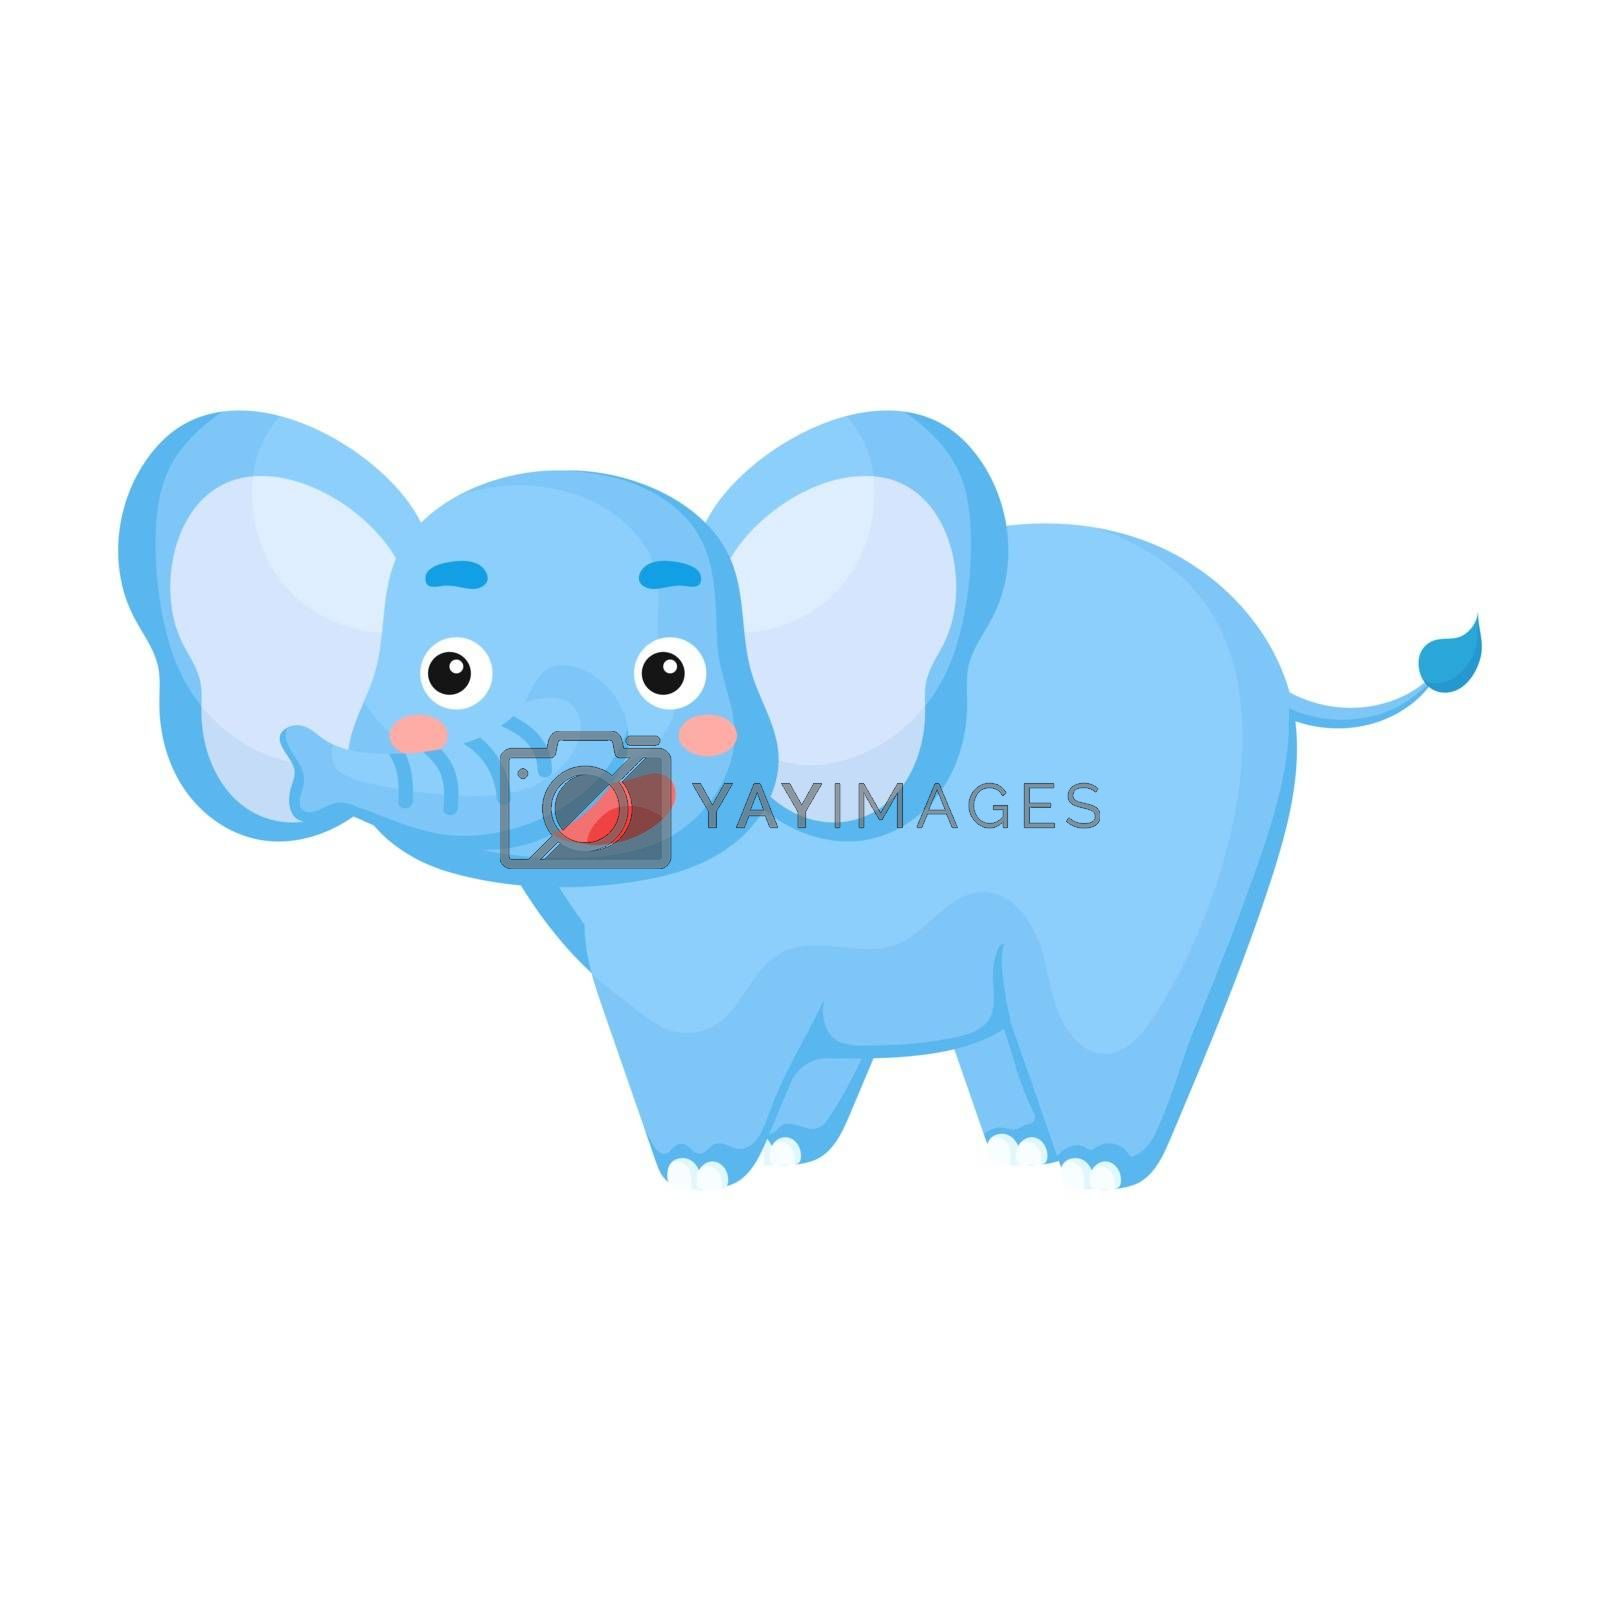 Royalty free image of Cute funny elephant print for design of album, scrapbook, greeti by Melnyk